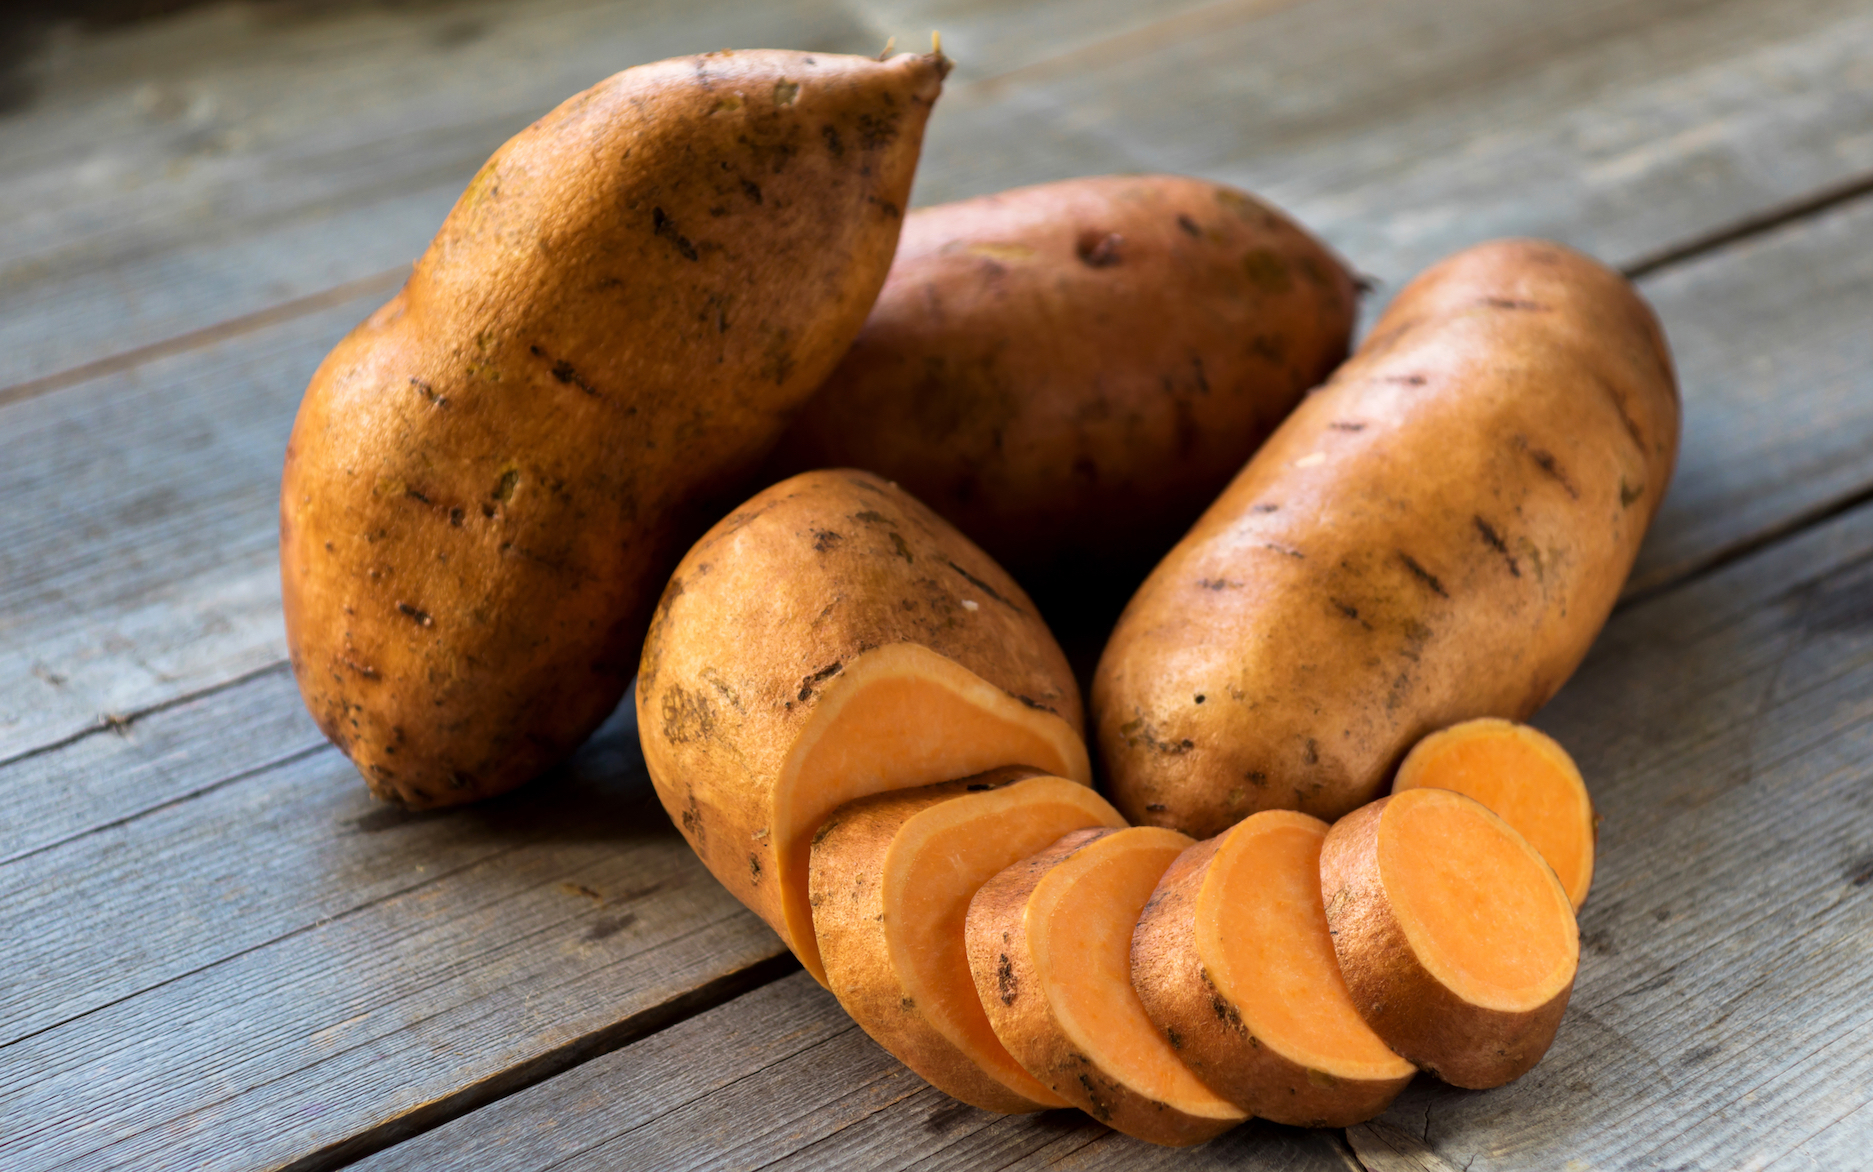 A study of several plant fossils has uncovered new revelations about the evolutionary history of sweet potatoes, finding that they are not native to the Americas after all.